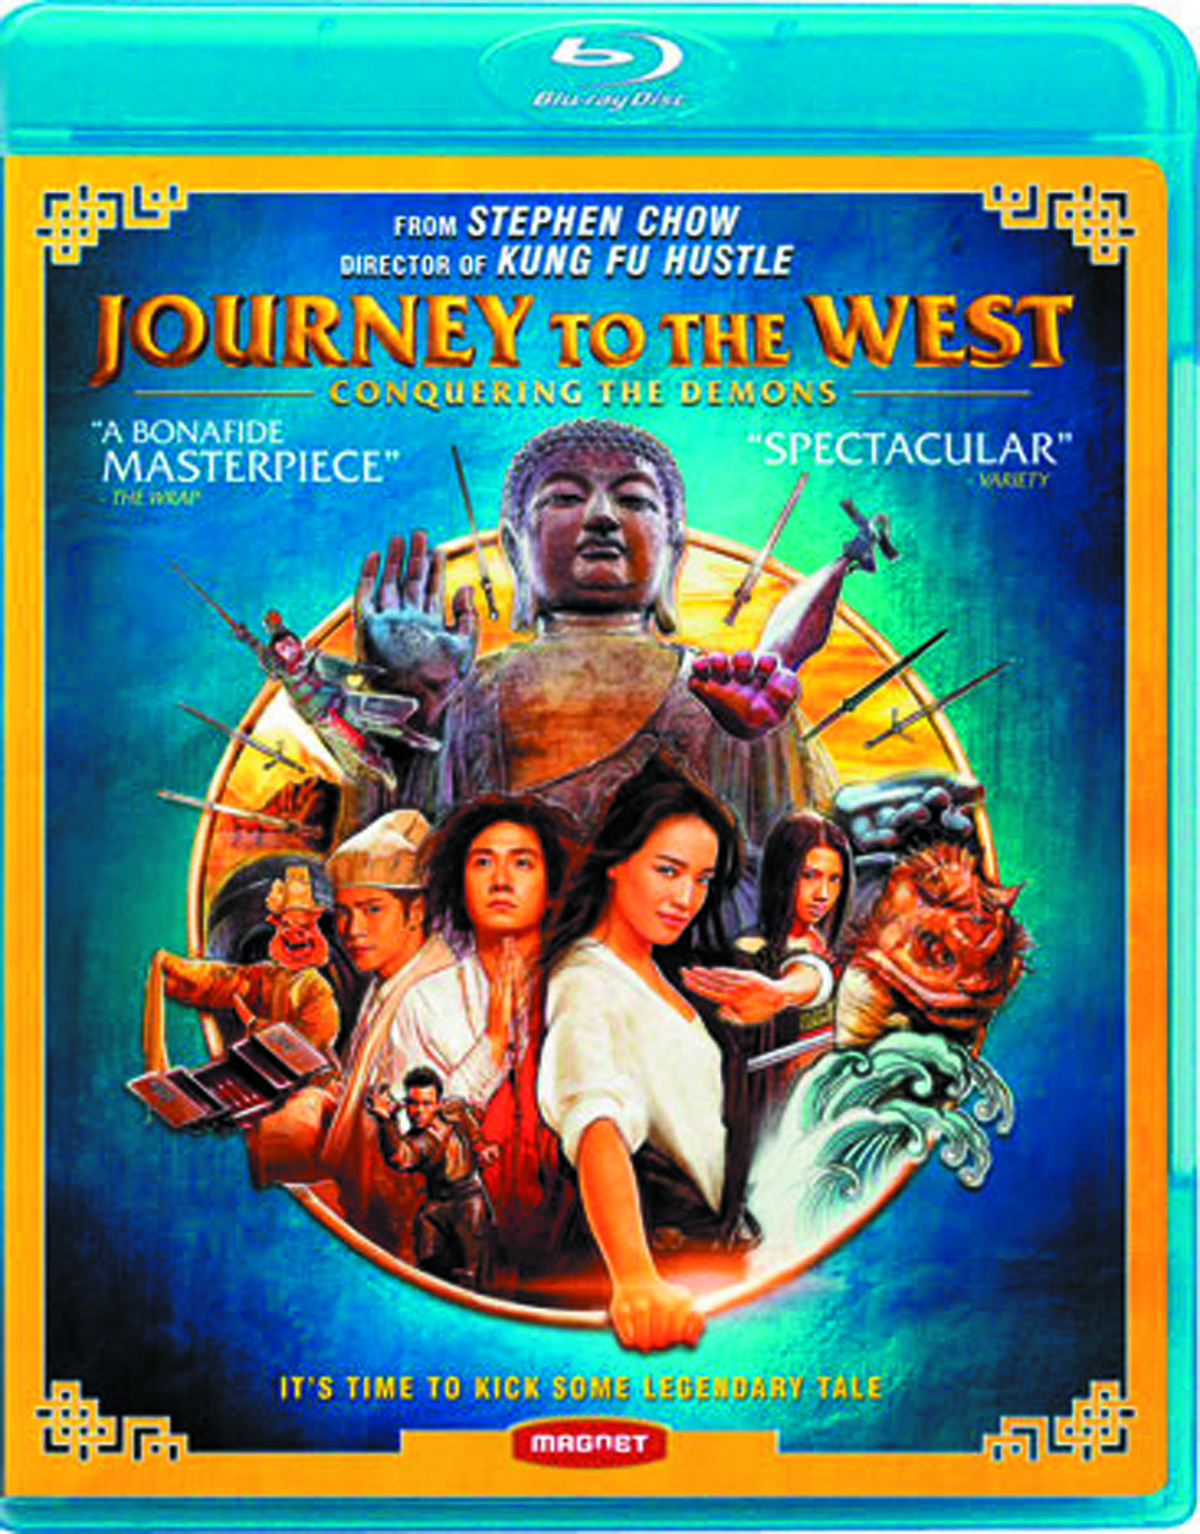 JOURNEY TO THE WEST BD